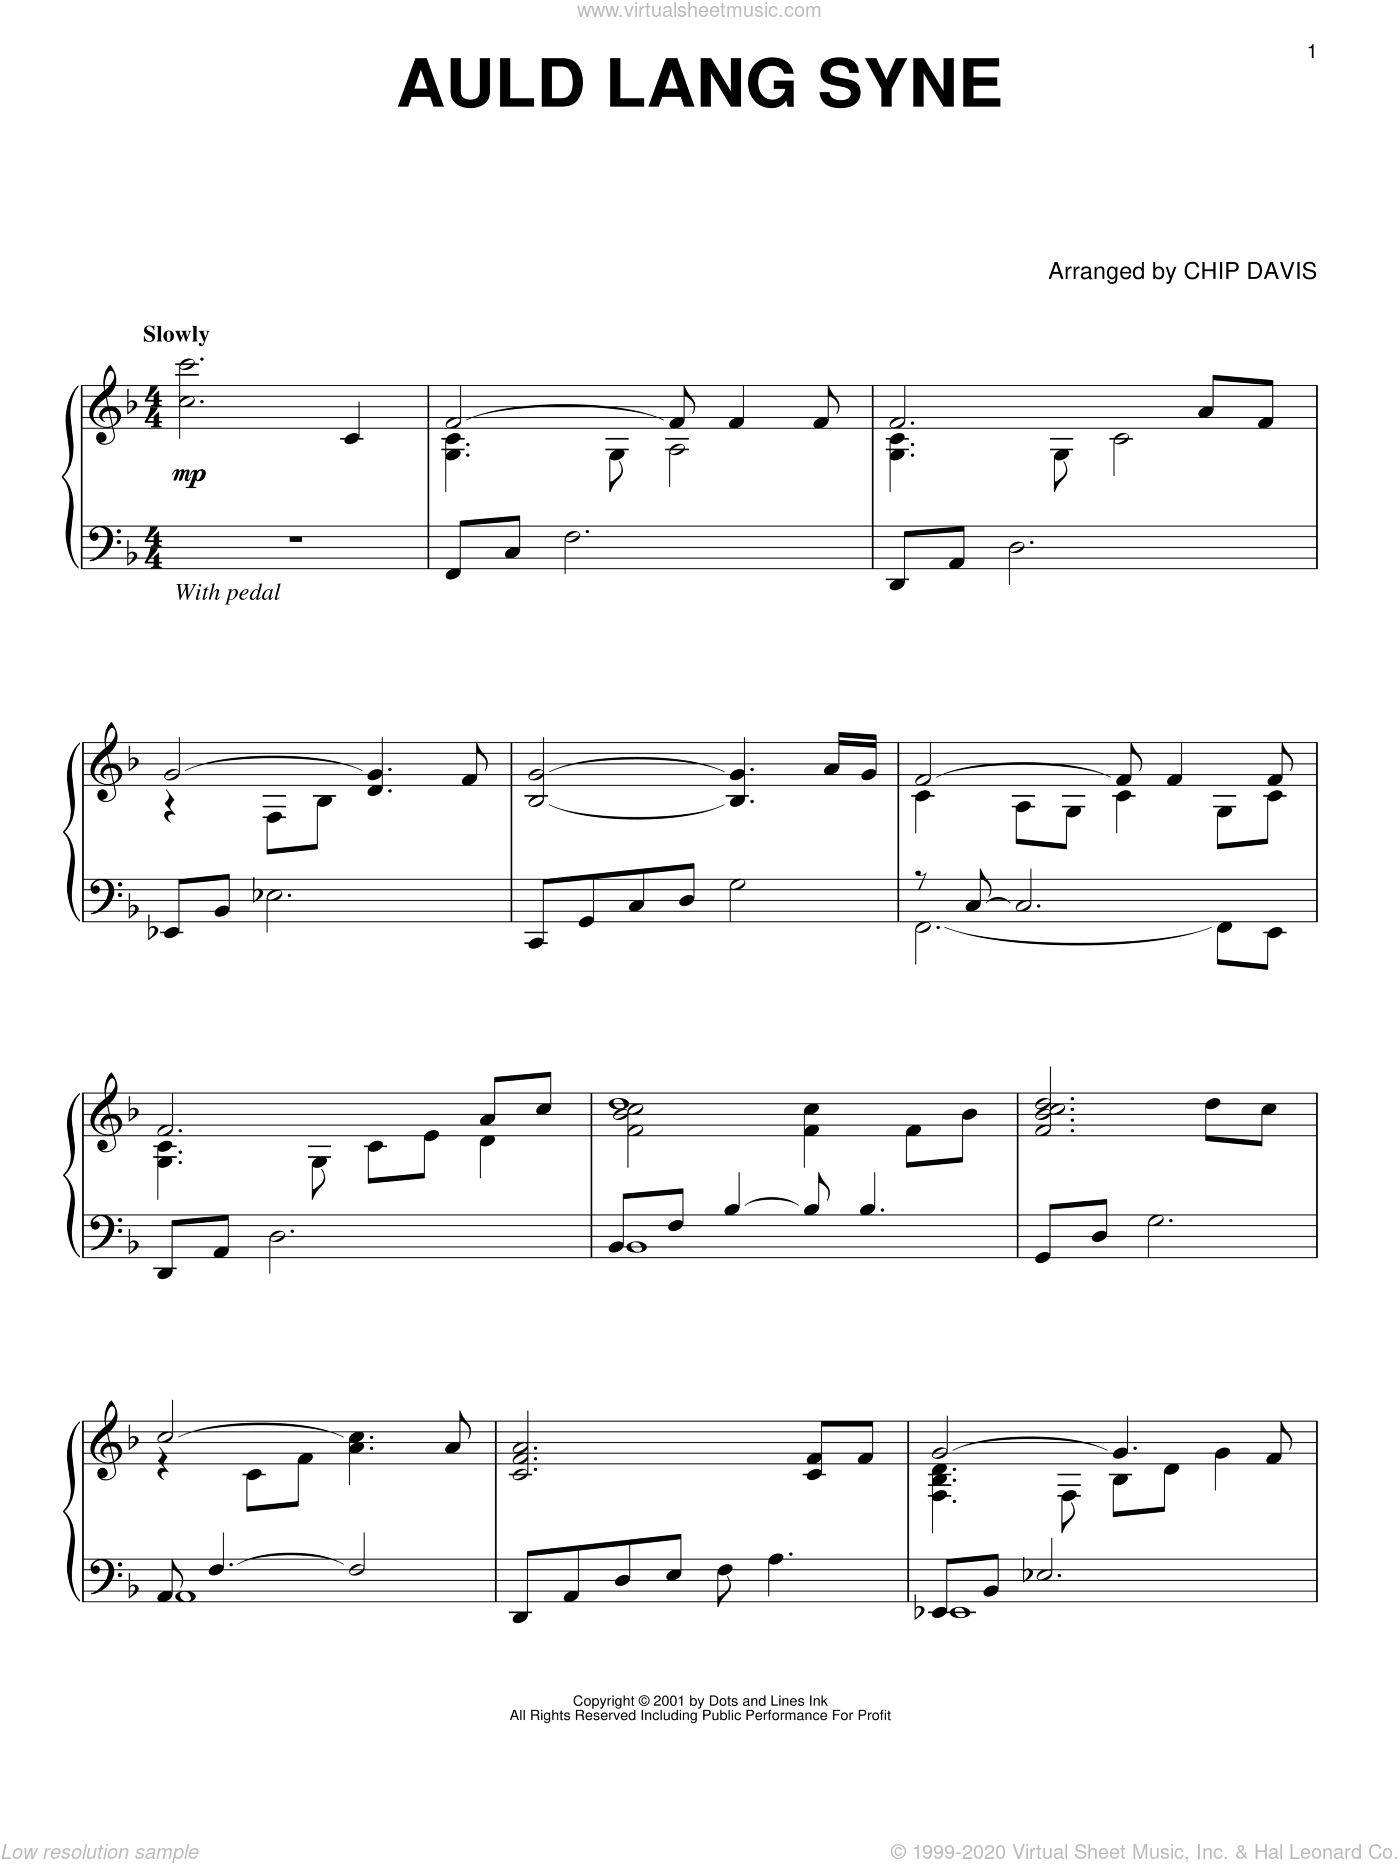 Auld Lang Syne sheet music for piano solo by Mannheim Steamroller and Chip Davis, intermediate skill level